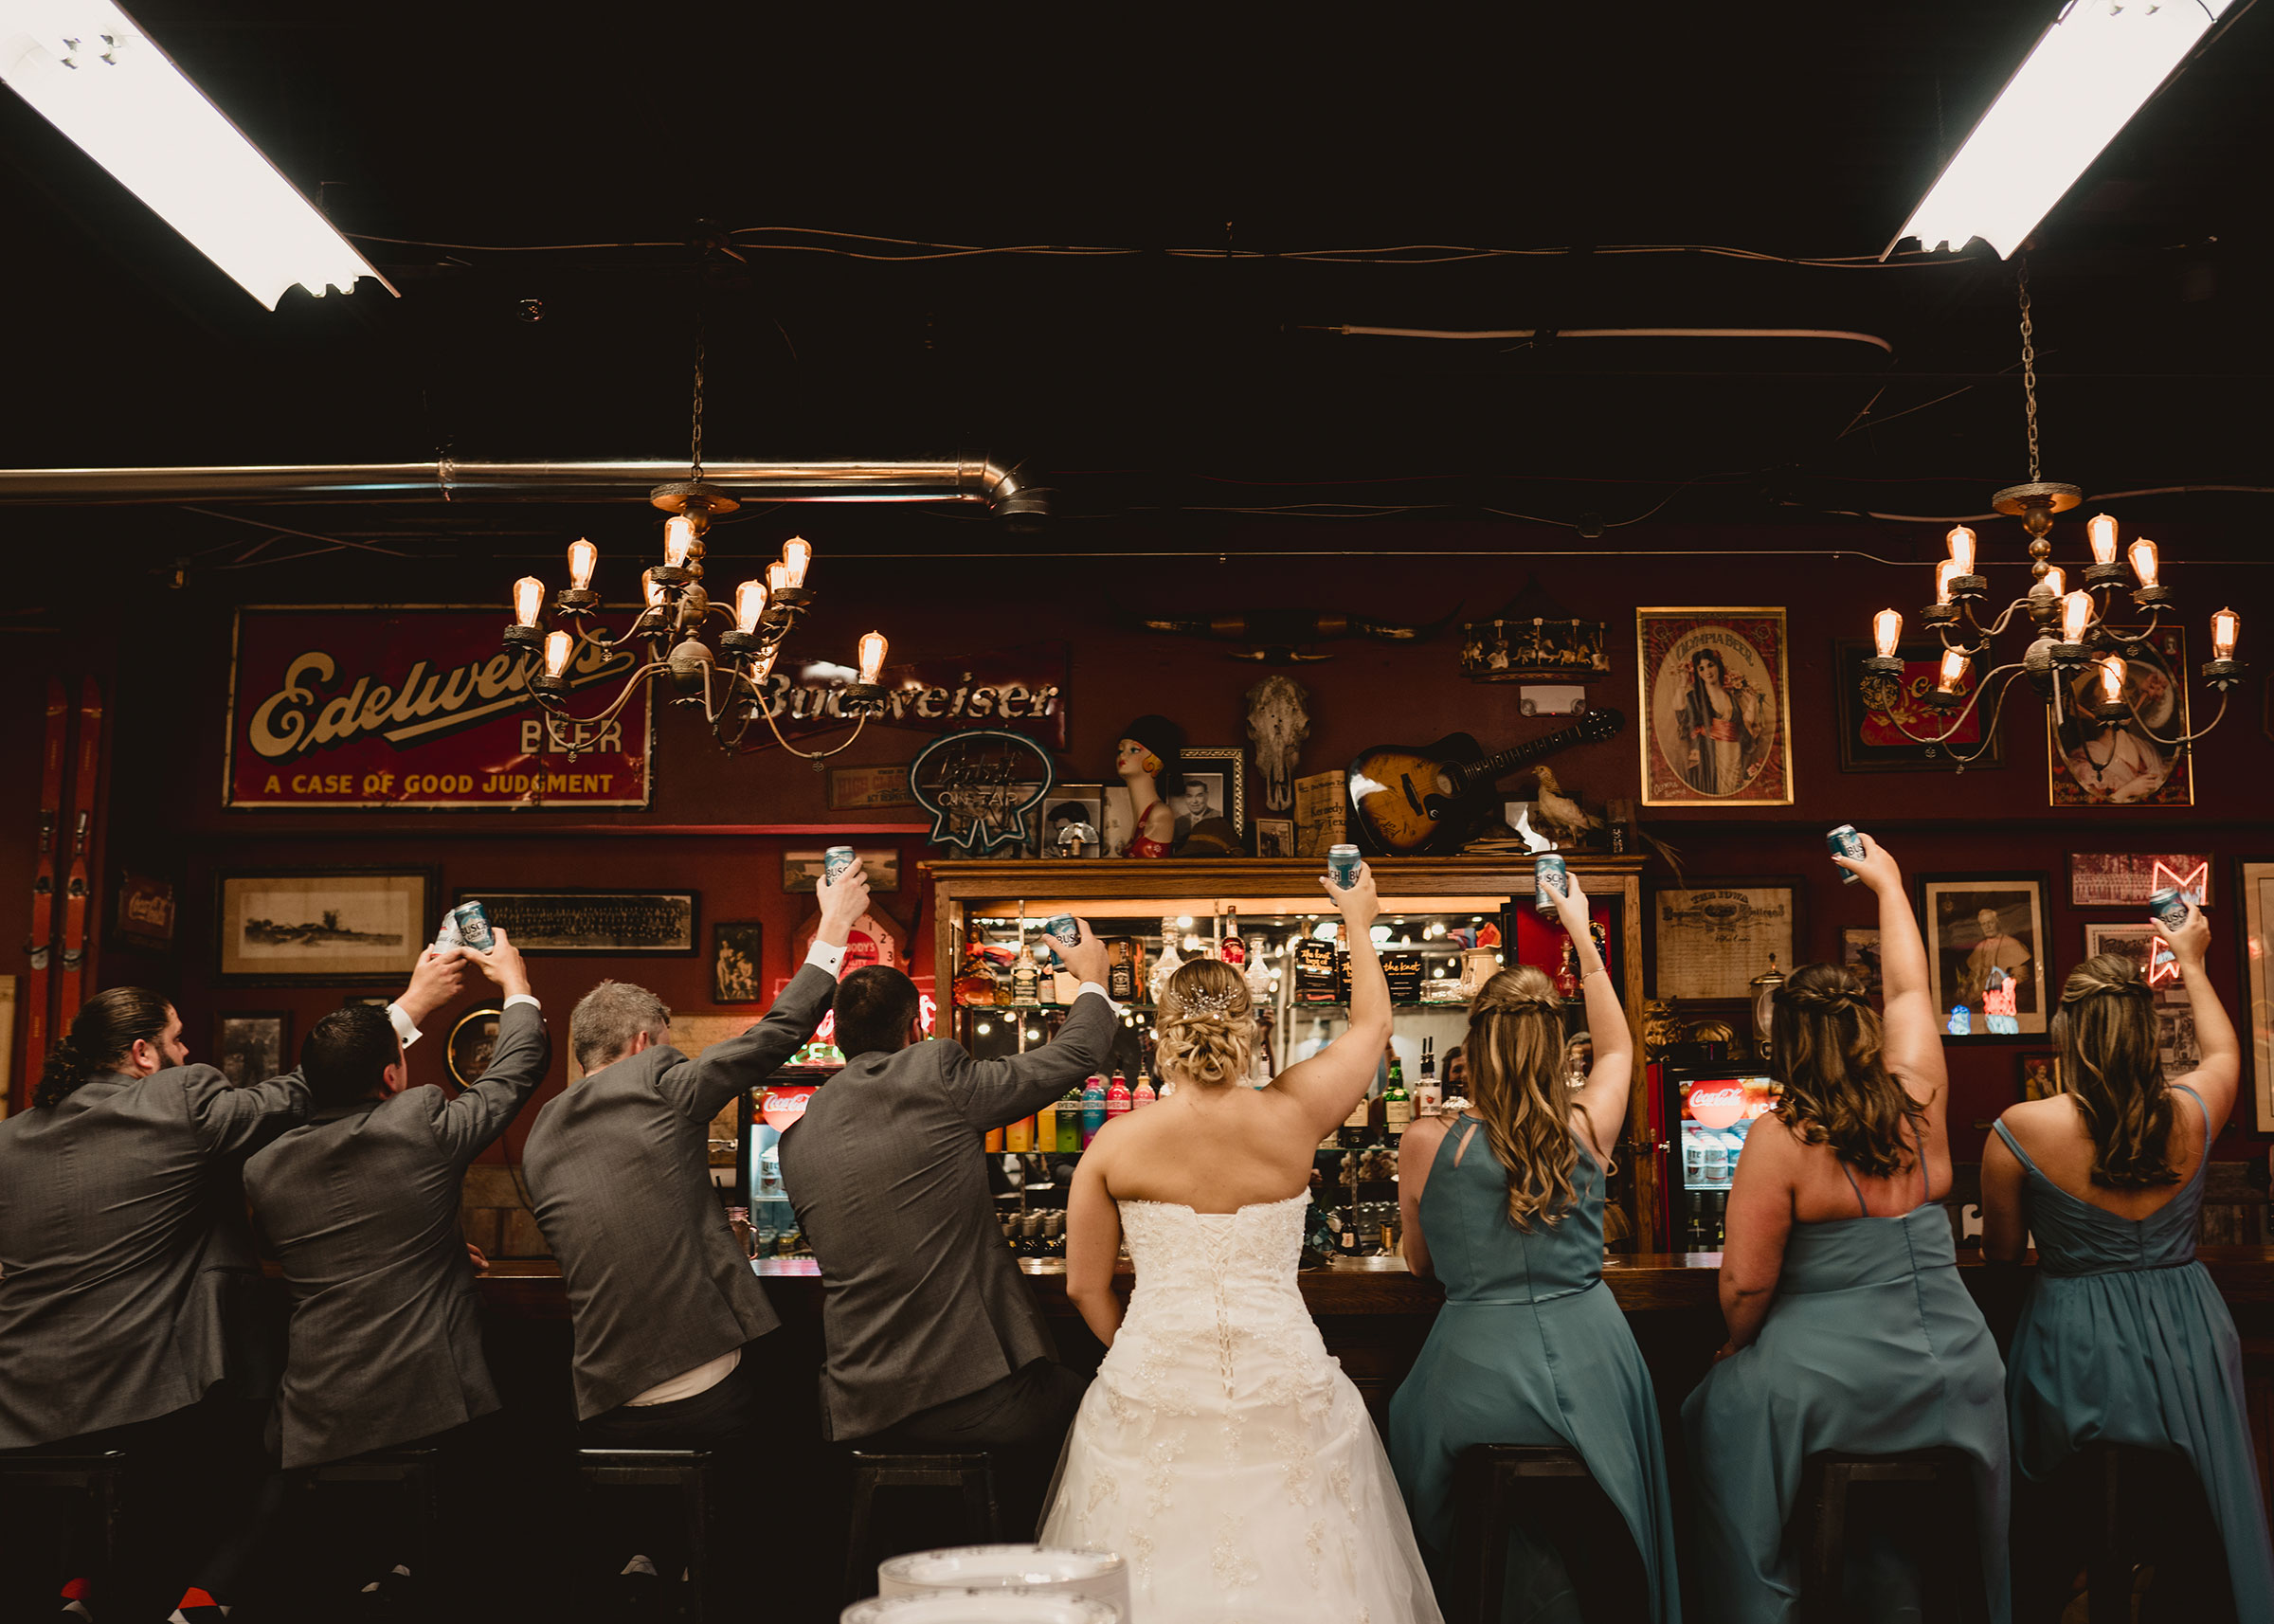 wedding-party-sitting-at-bar-decades-event-center-building-desmoines-iowa-raelyn-ramey-photography..jpg